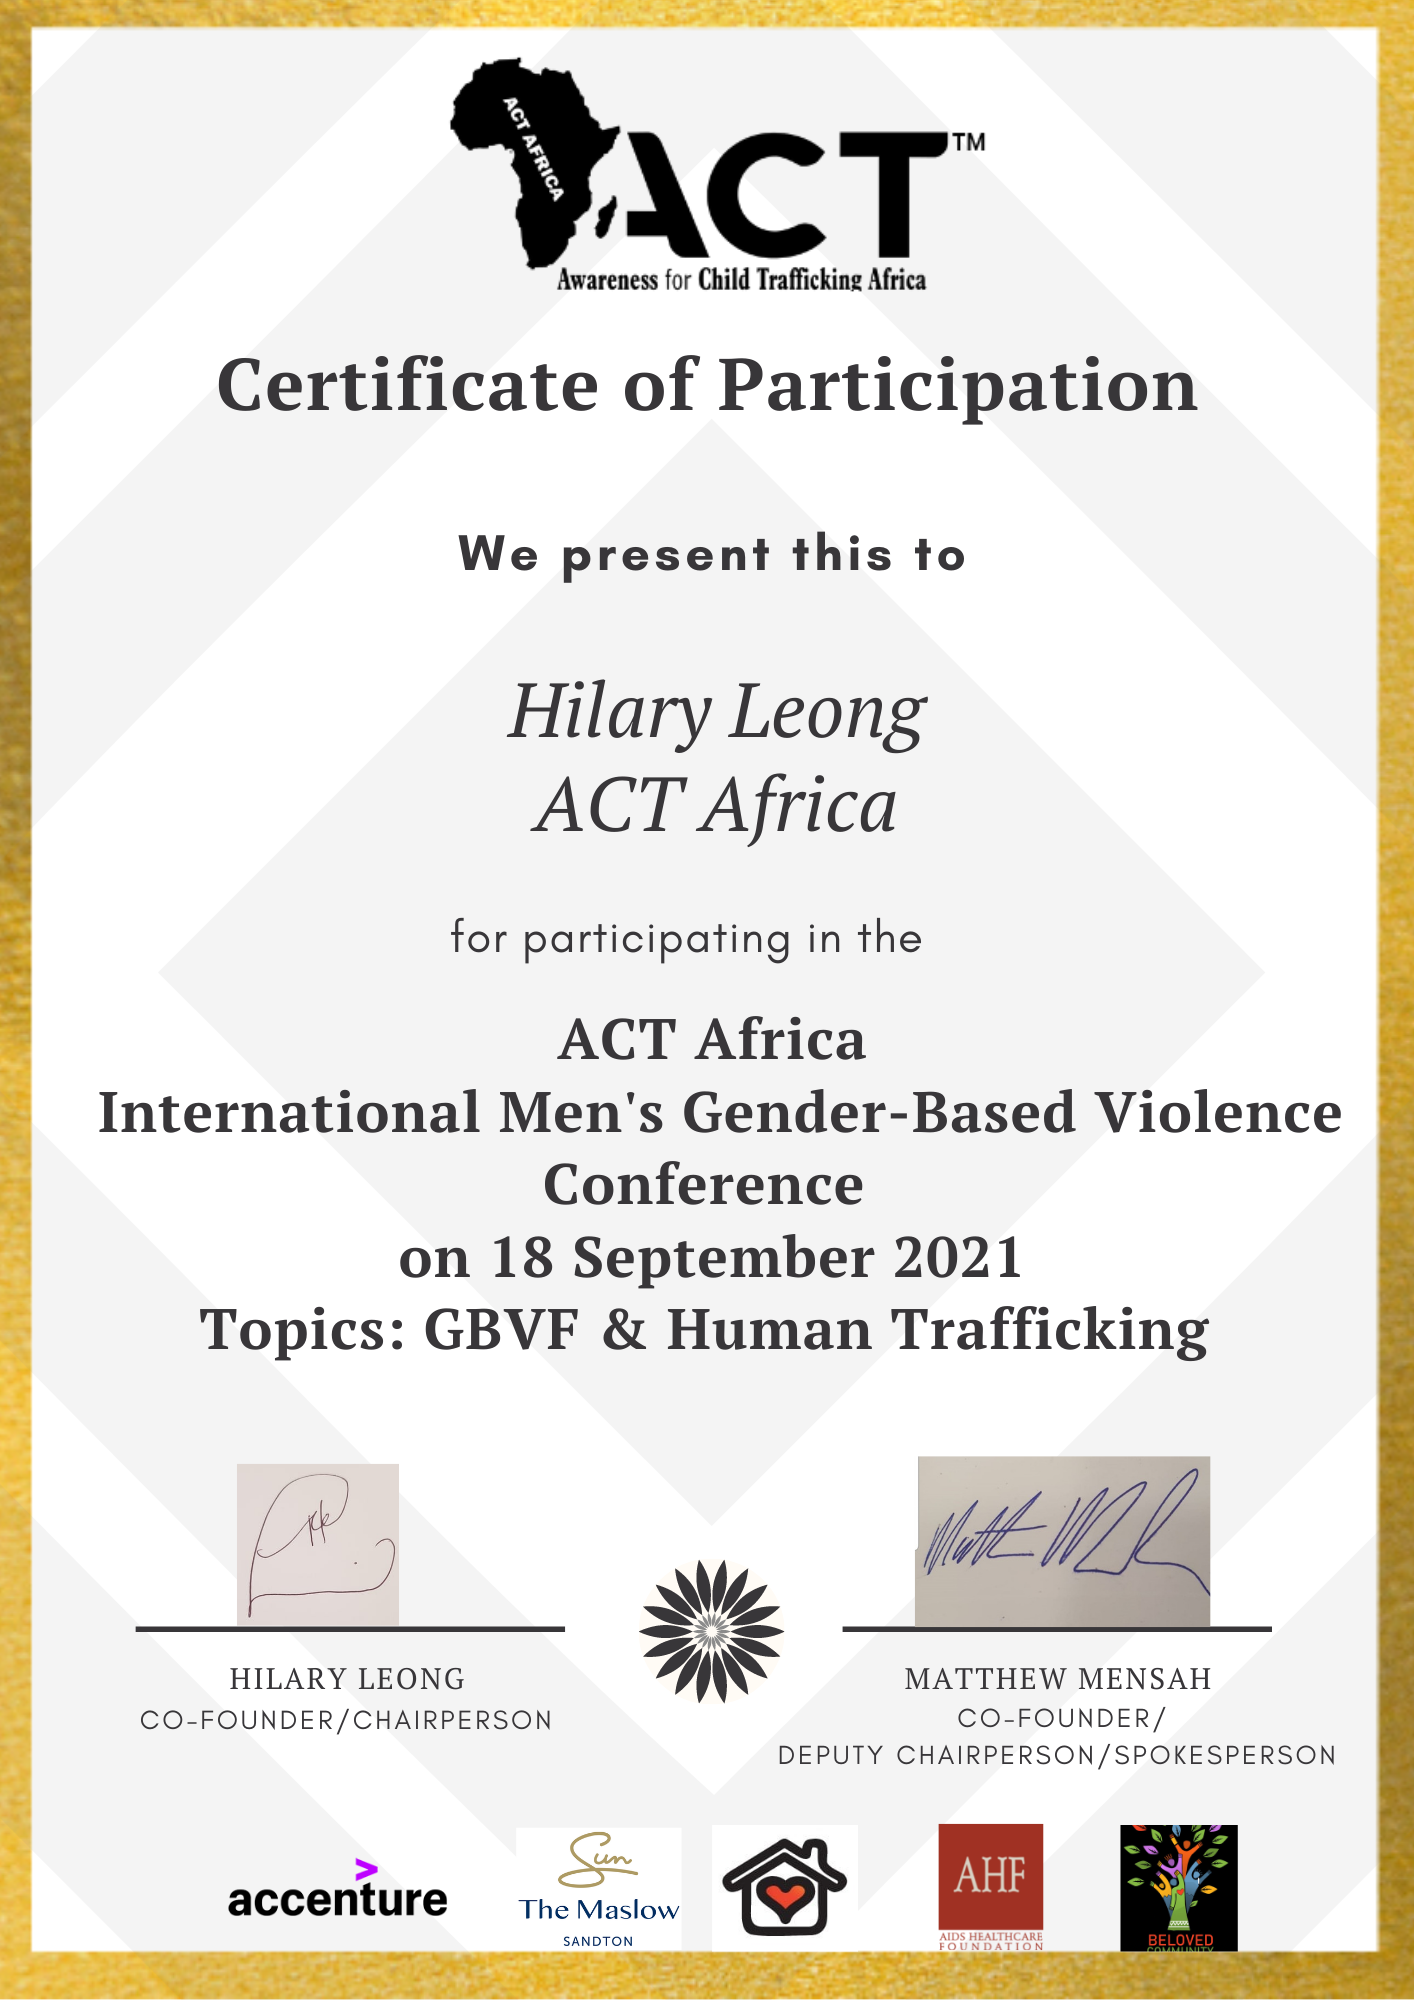 ACT Africa International Men's GBVF Certificate of Participation - Hilary Leong